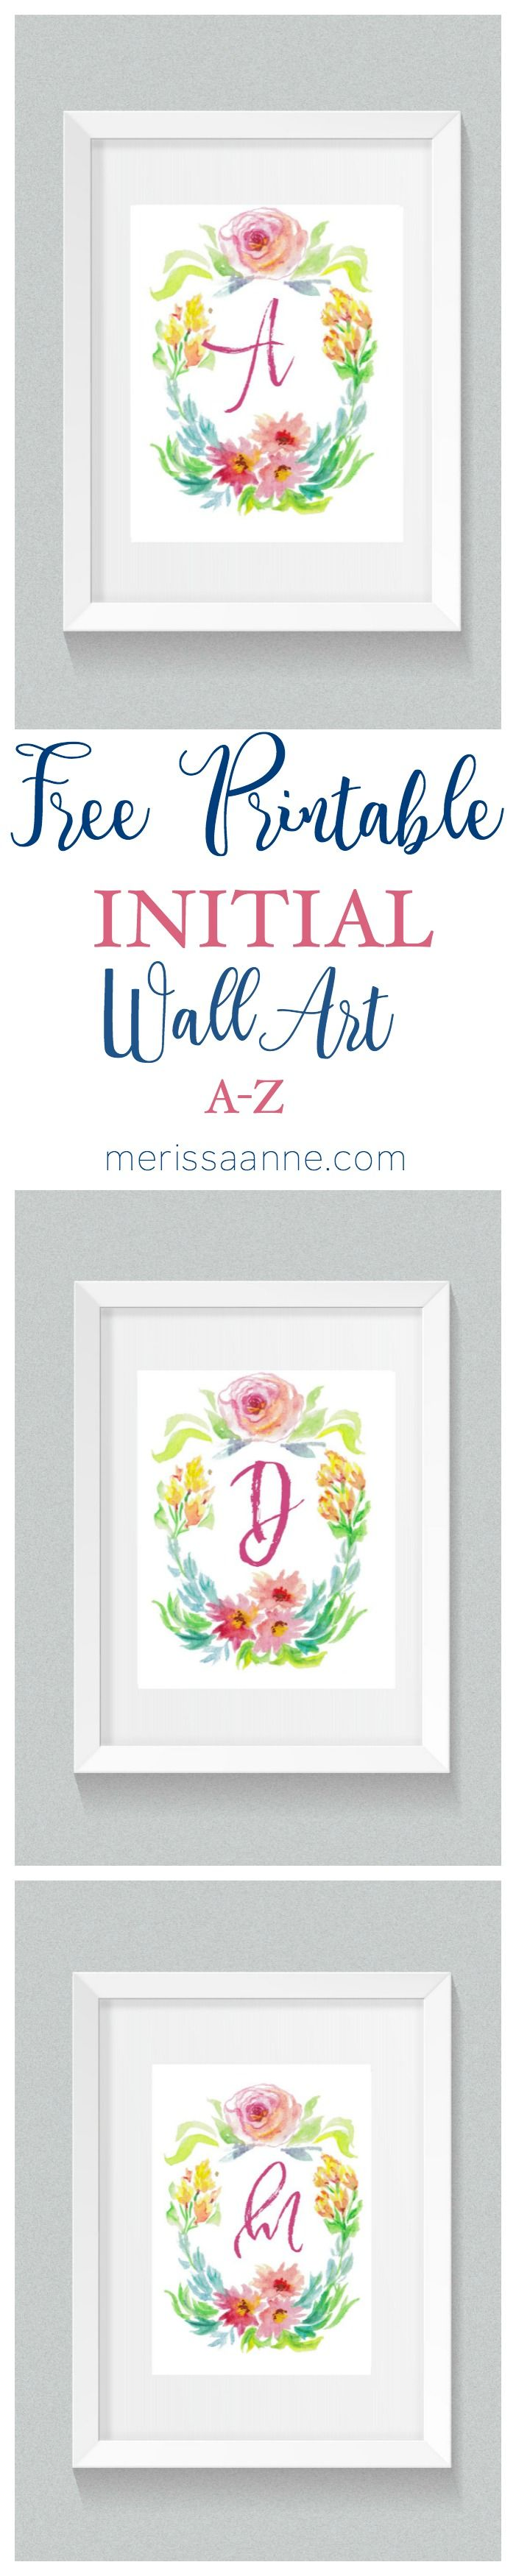 Free printable initial wall art or iphone wallpaper! Watercolor florals. A-Z. http://www.merissaanne.com/2016/11/11/free-printable-initial-wall-art/